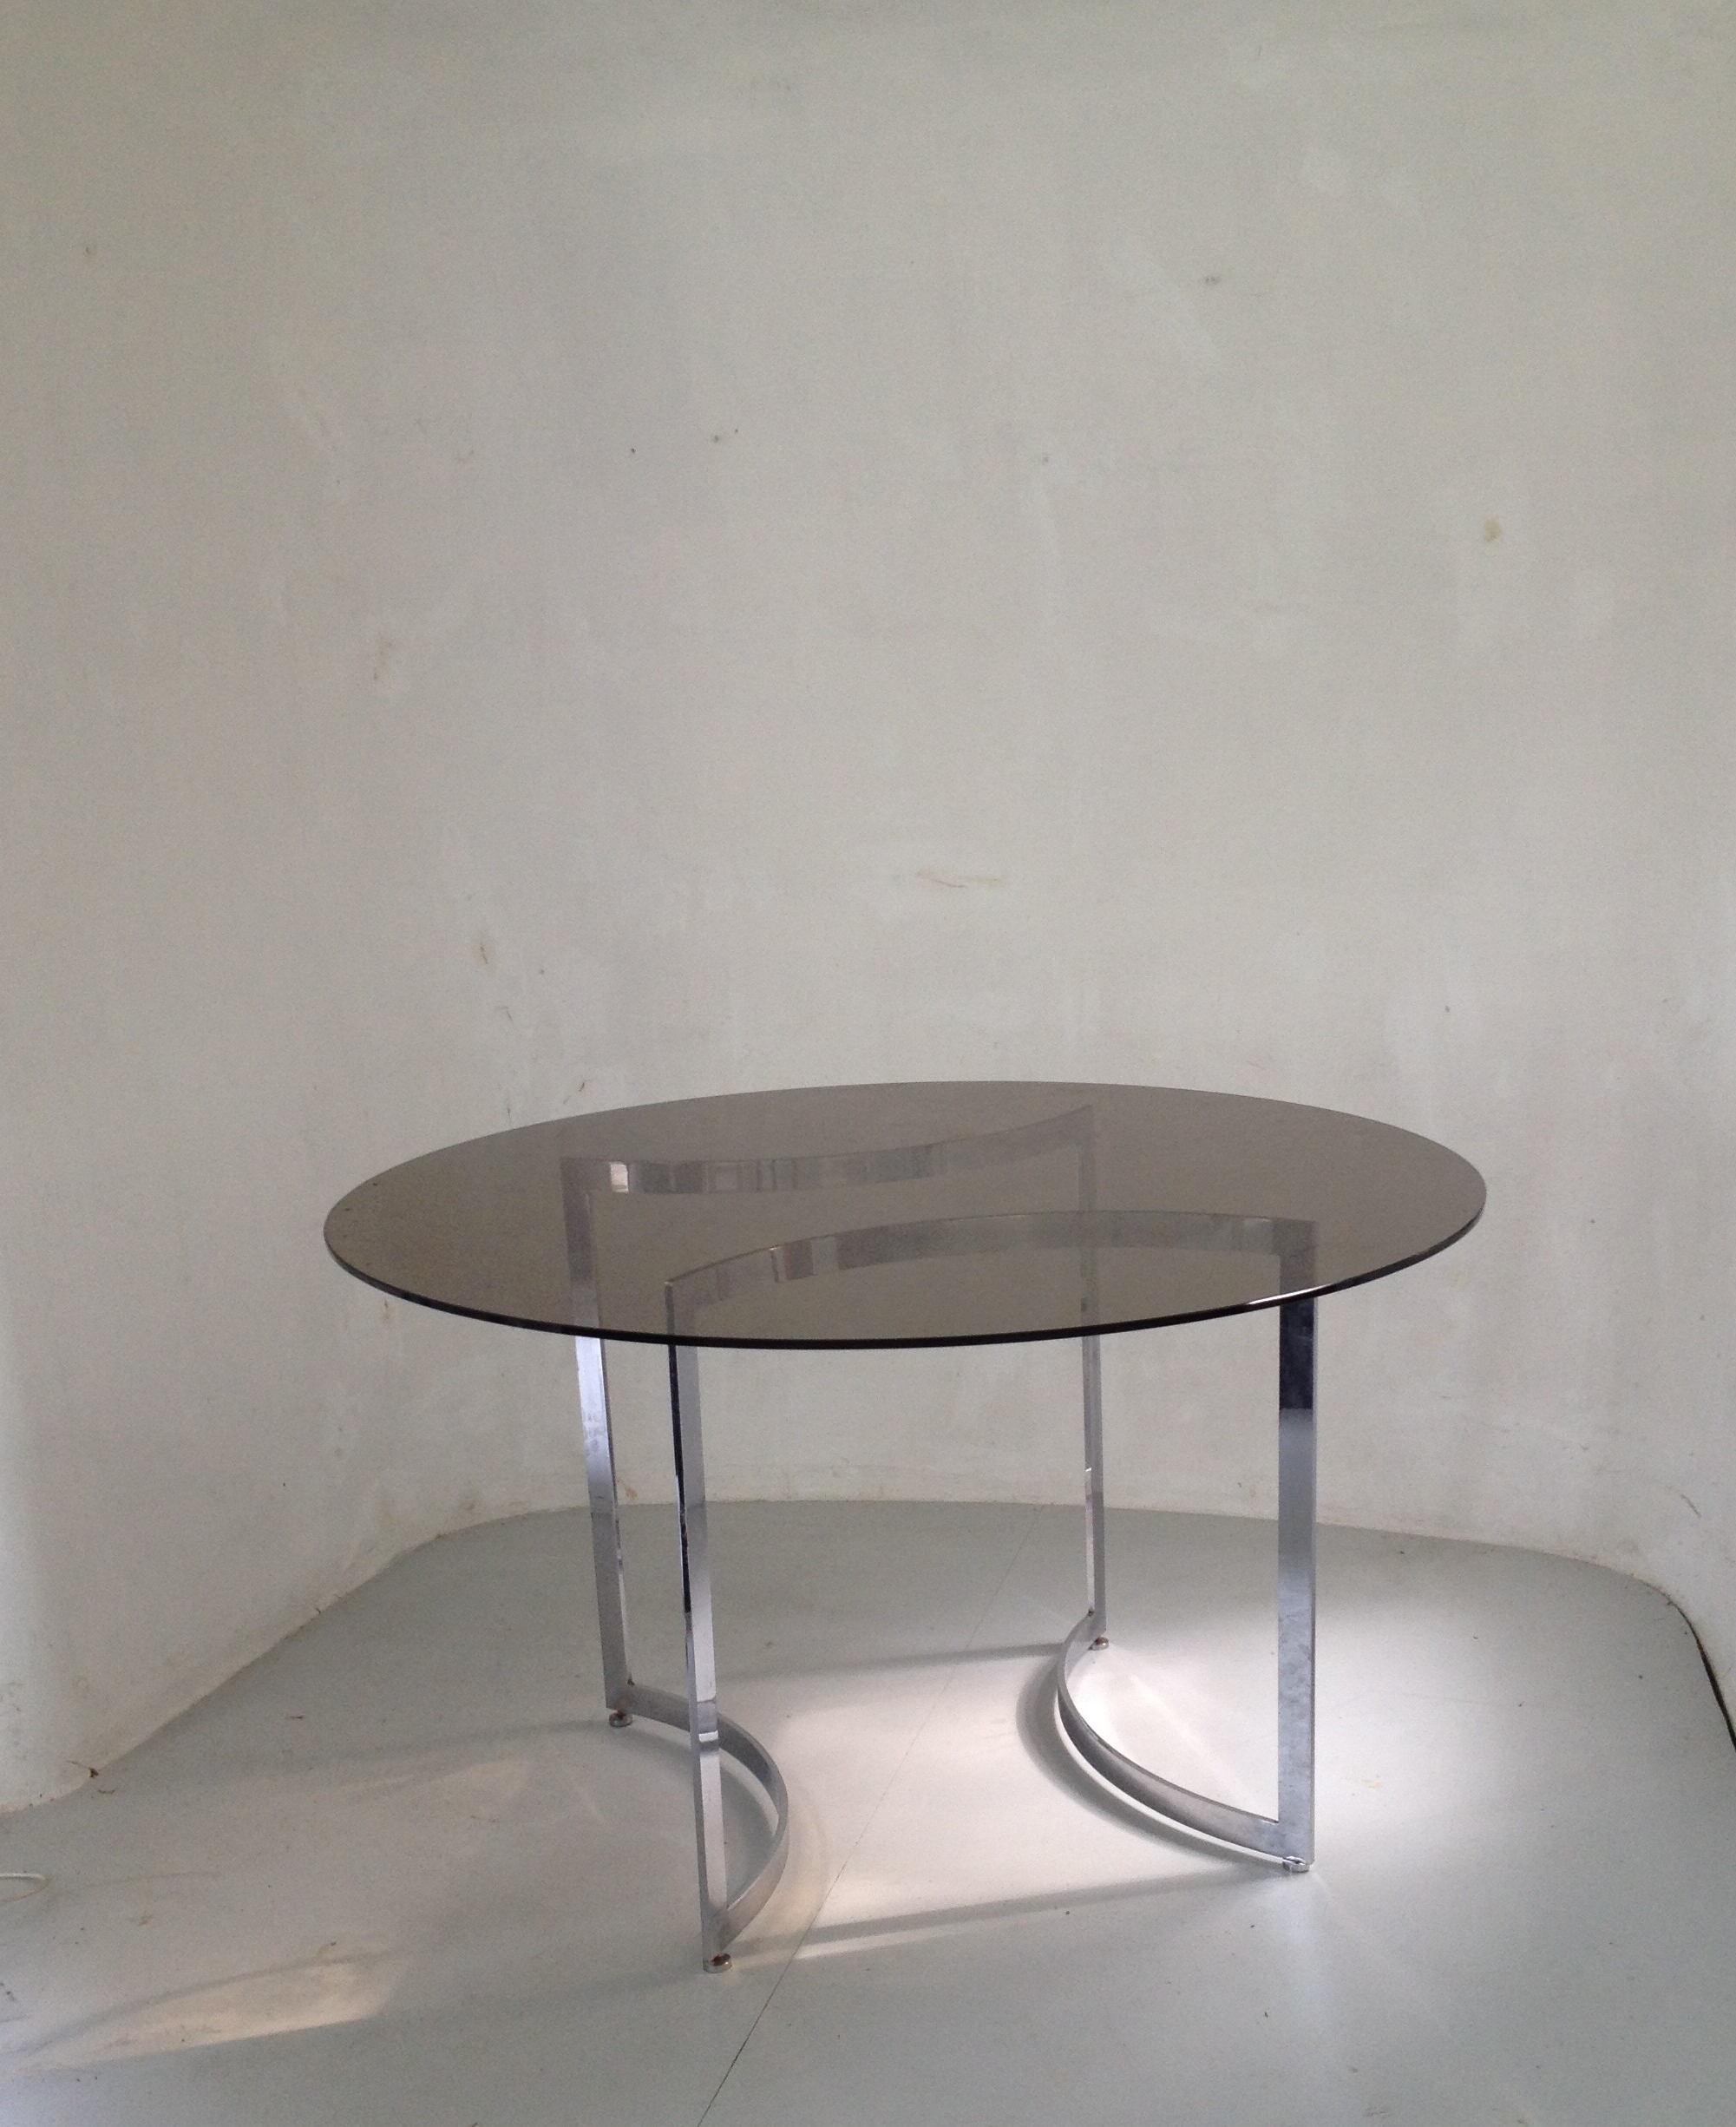 Favorite Dom Round Dining Table In Hardened Glass And Steel, Paul Legeard – 1970S Regarding Dom Round Dining Tables (Gallery 23 of 30)